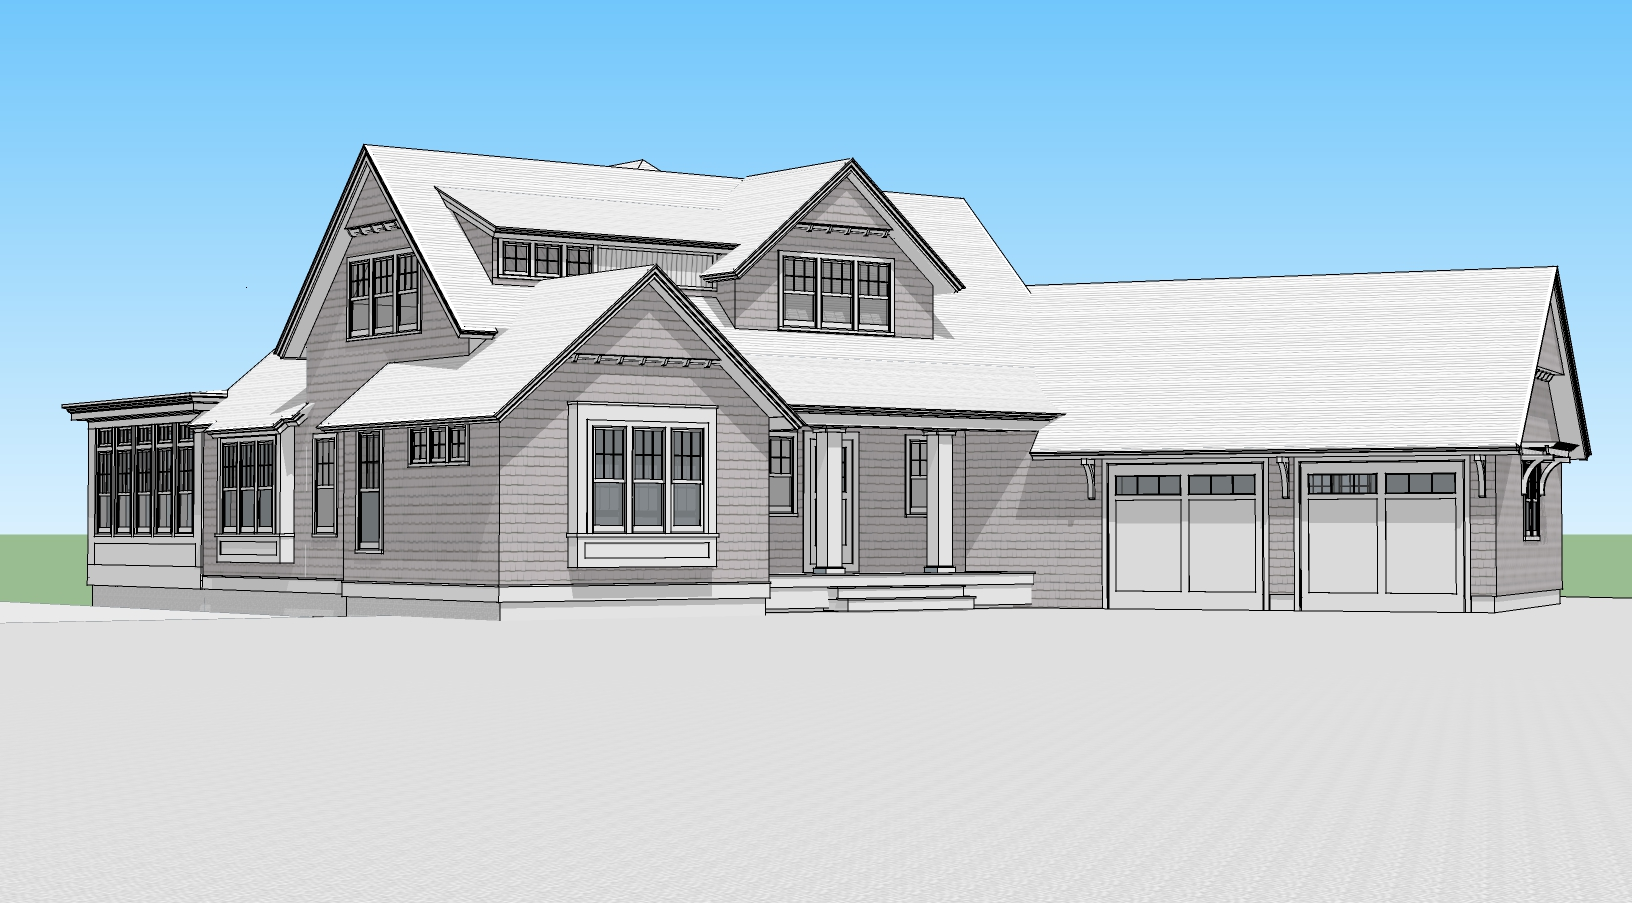 Rendering of New Single Family Home